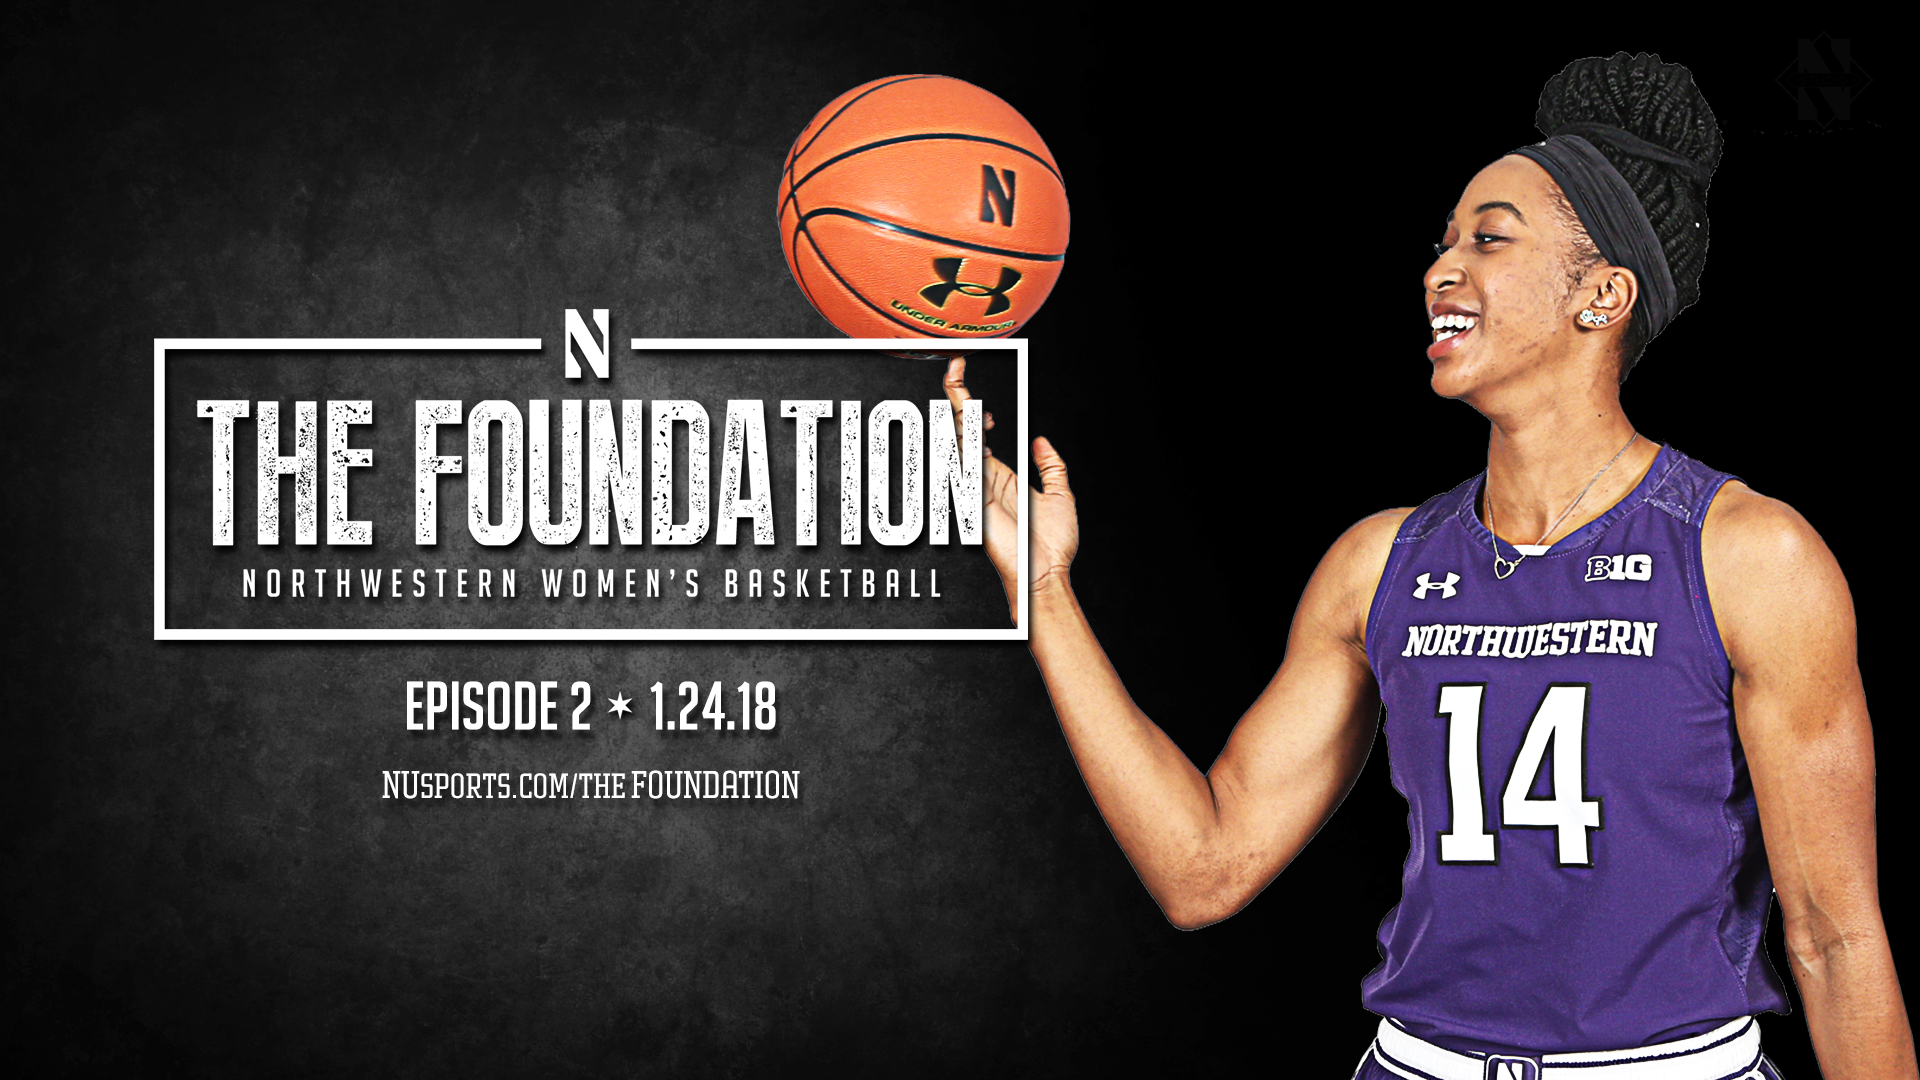 The_foundation_episode_2